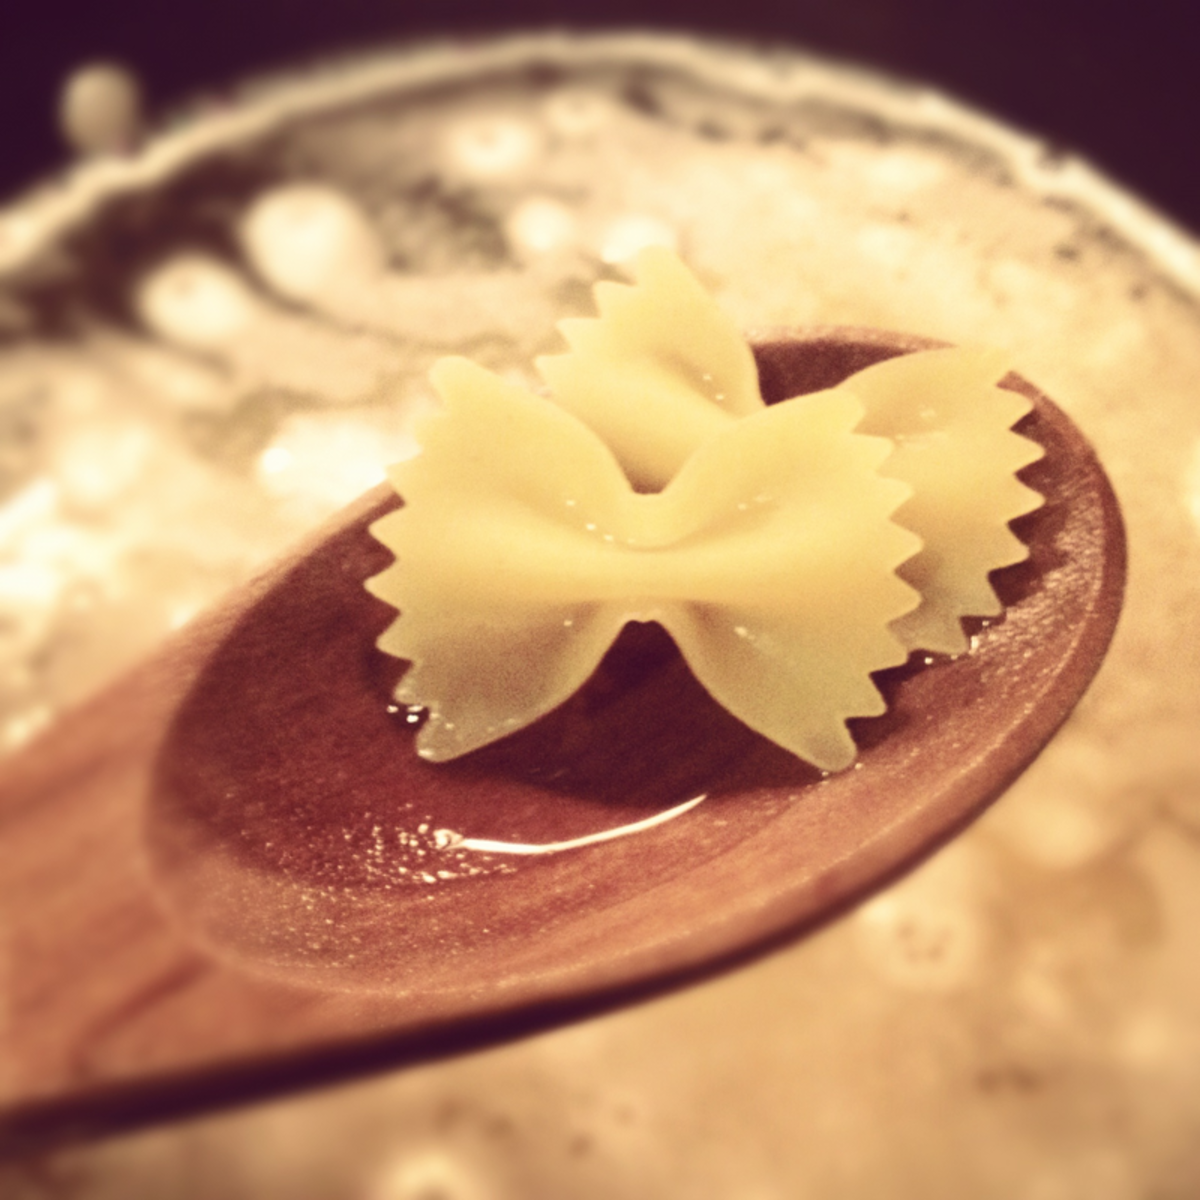 Pasta Bow ties on Wooden Spoon